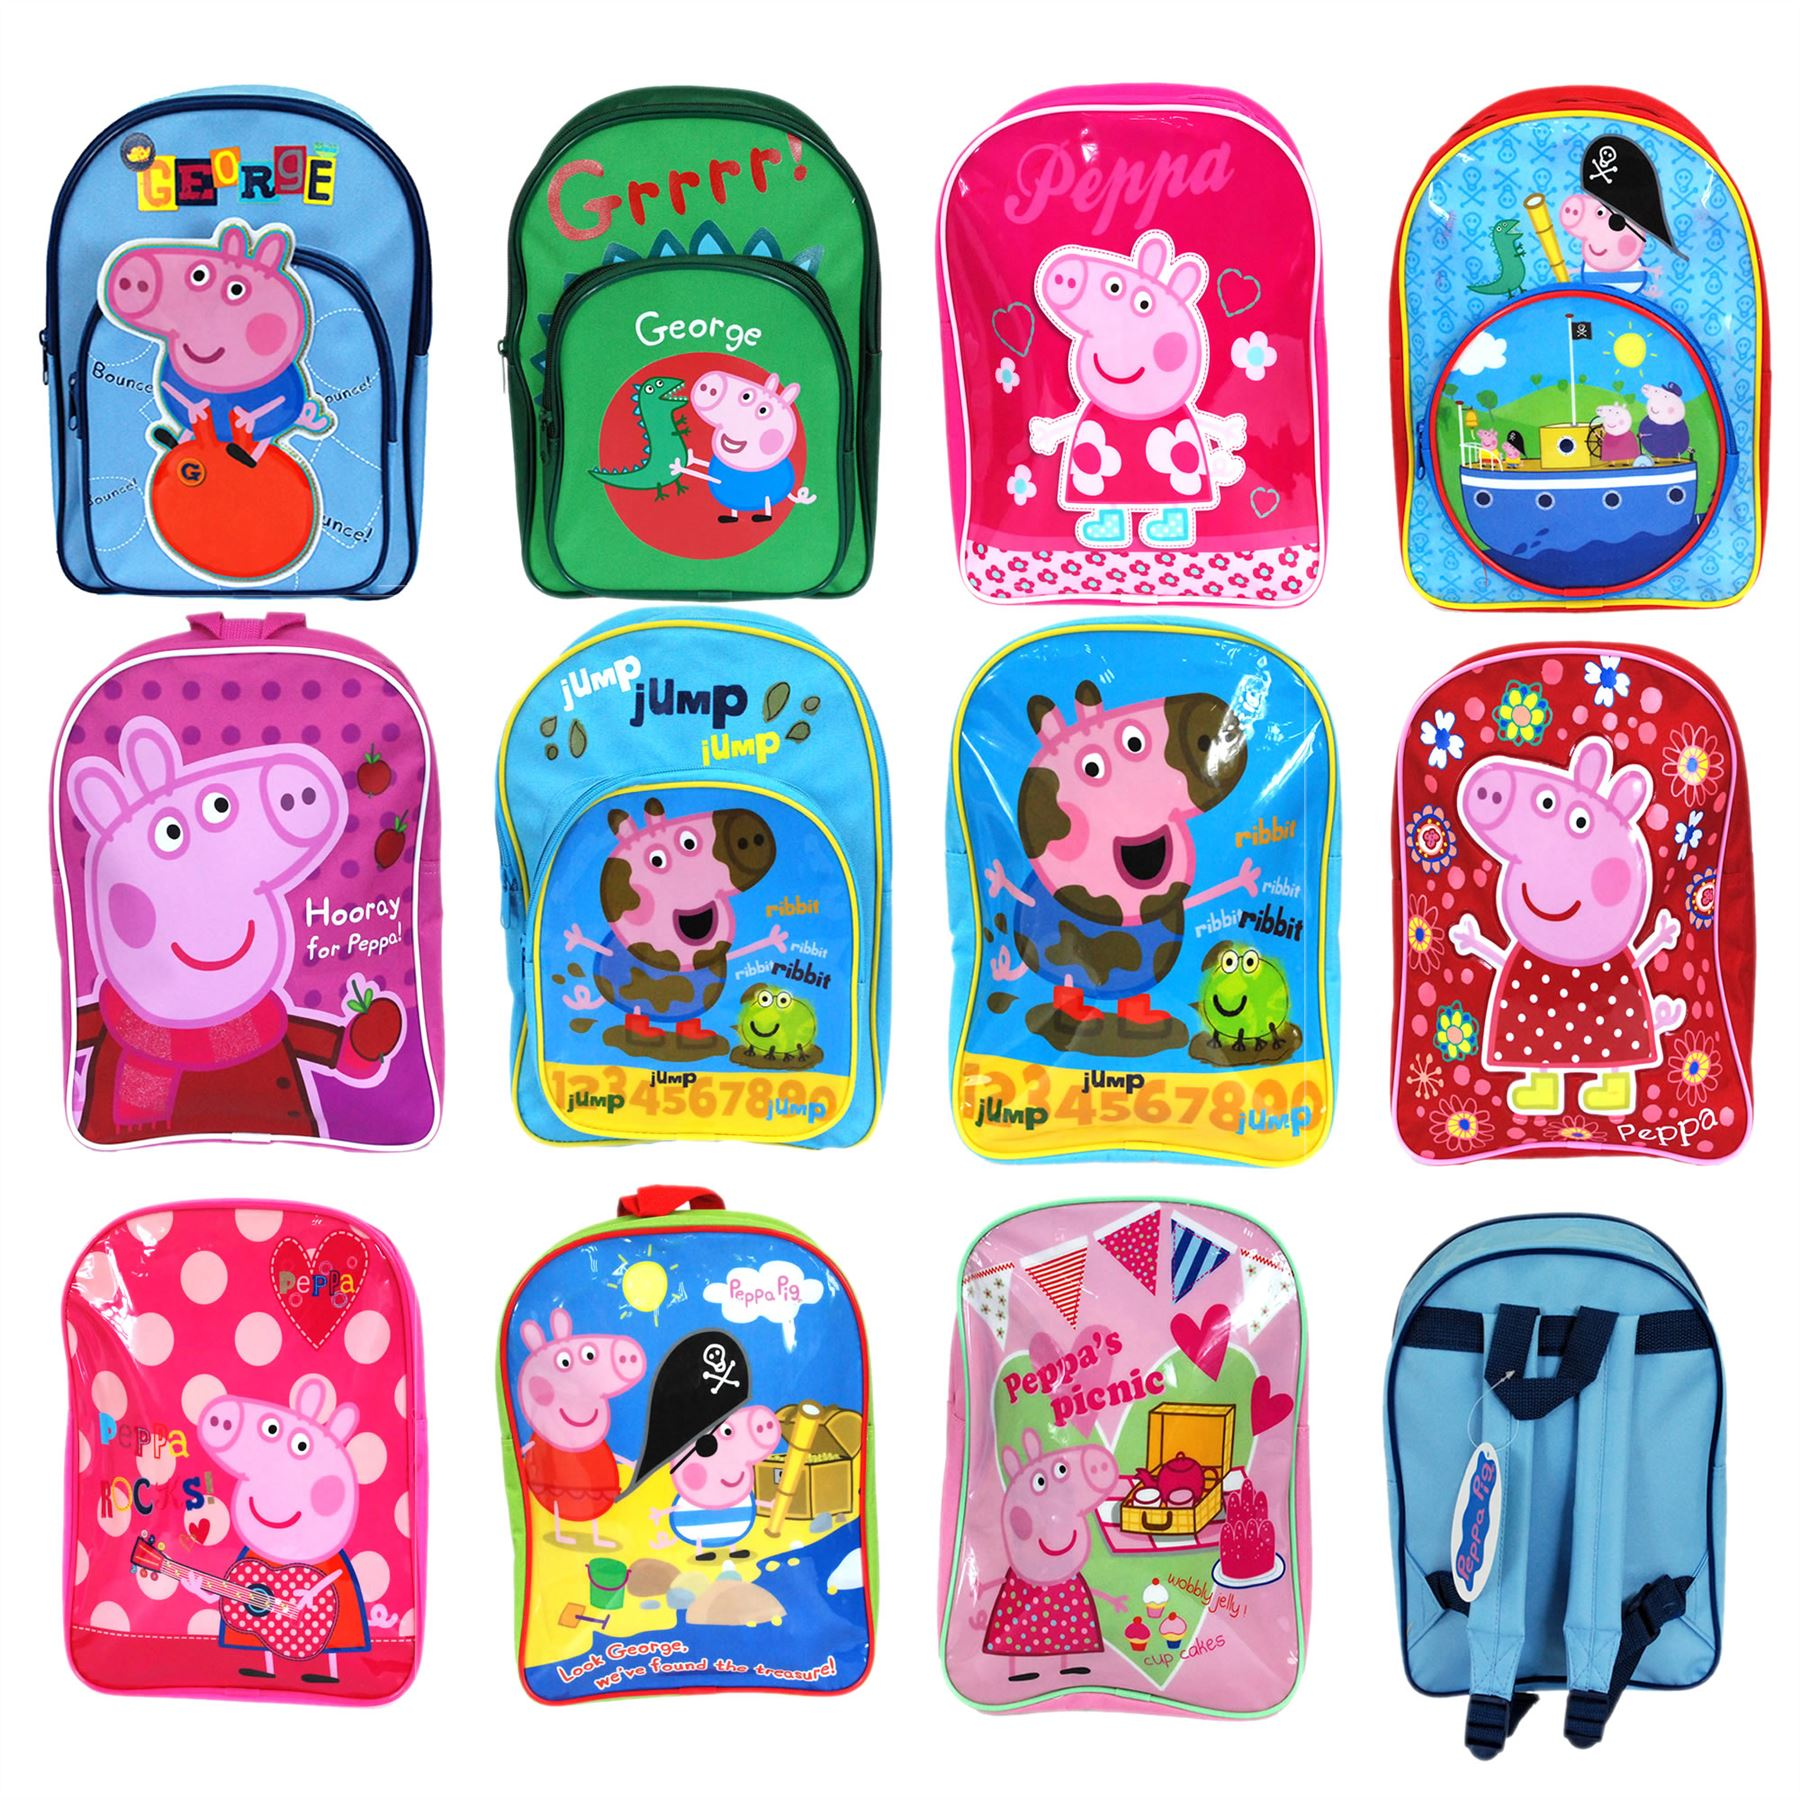 Image result for peppa pig school bag